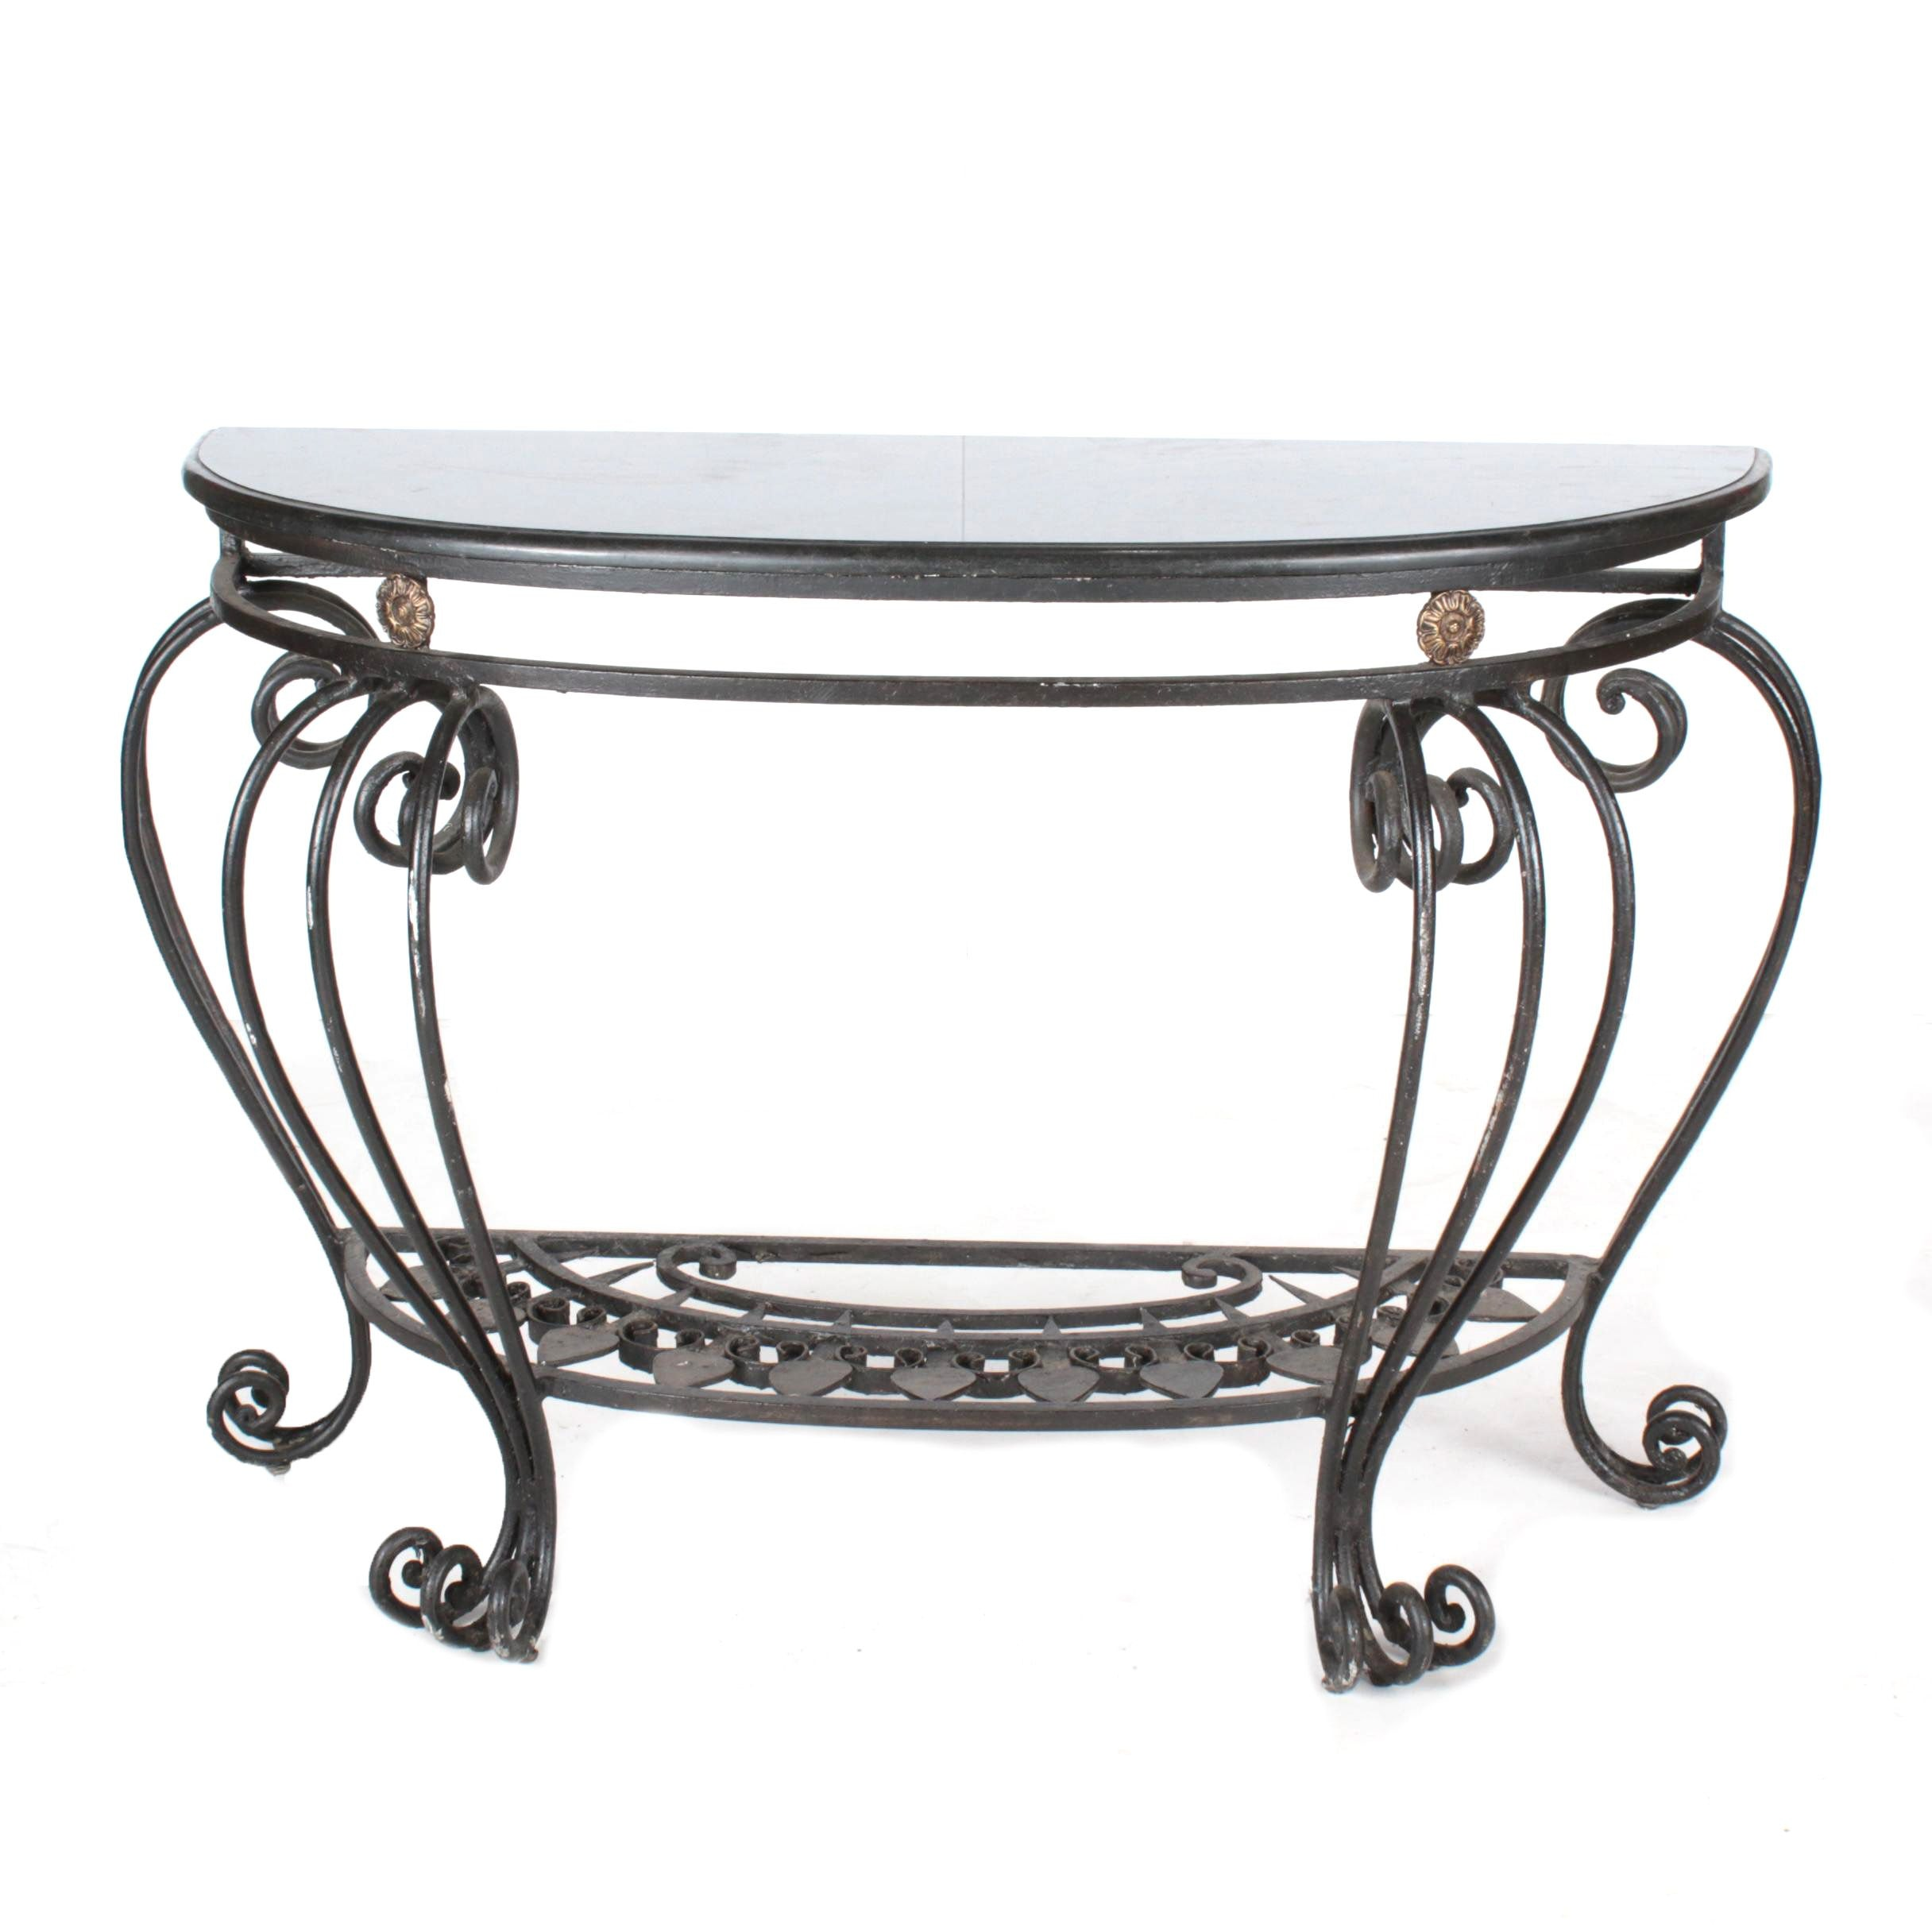 Wrought Iron Demilune Console Table with Black Granite Top